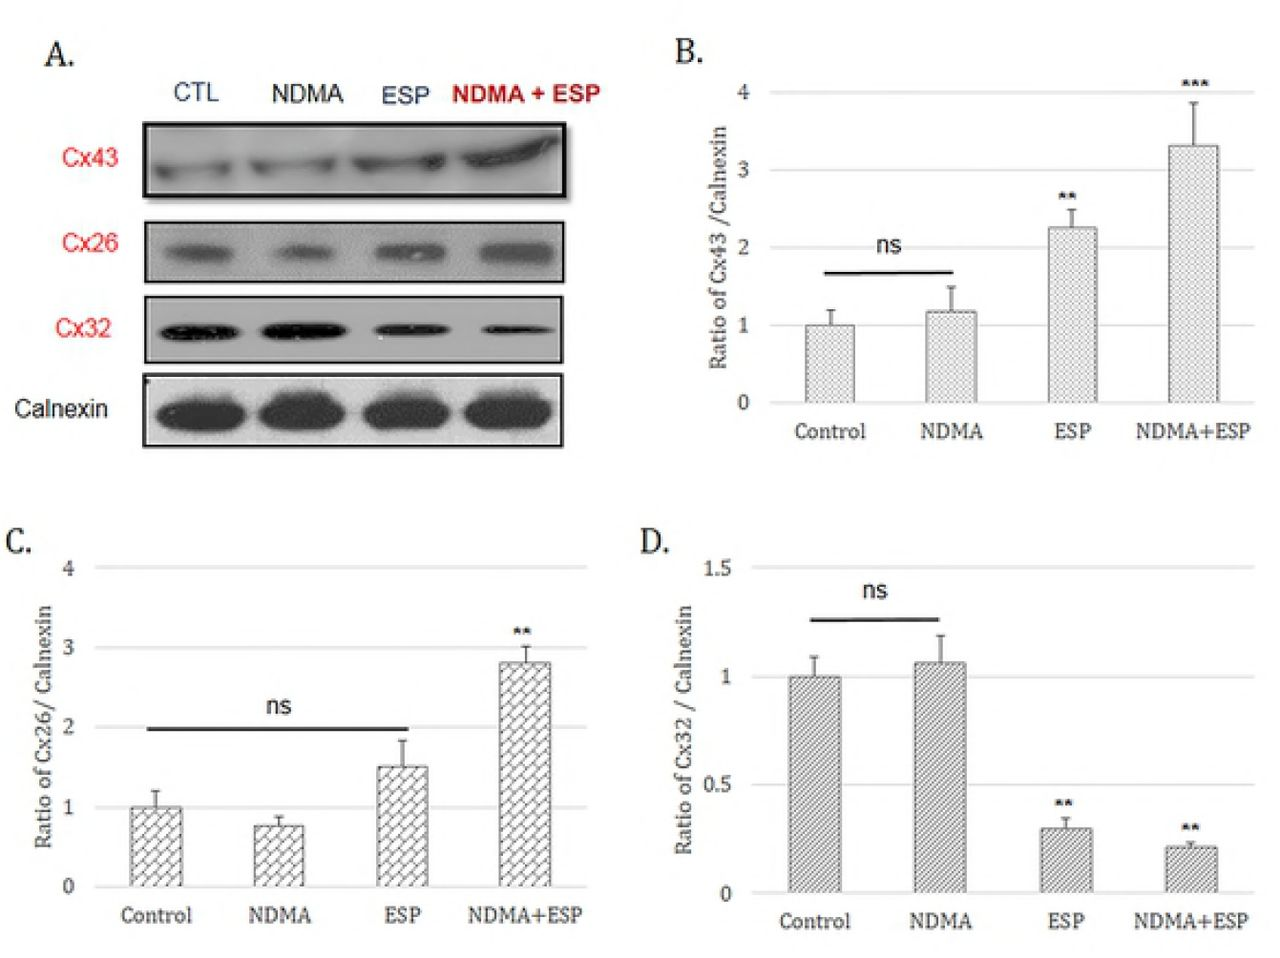 Expression of the gap-junction proteins connexin 26, connexin 32, and connexin 43 in H69 cells after treatment with NDMA and/or ESP, as determined by western blotting. H69 cells were incubated with either PBS (vehicle) or NDMA and/or ESP for 72 h, and the cells were collected for protein extraction. The blots of each groups were run under same experimental conditions and the images were cropped from different parts of the same gels, DATA represent the mean ± SE of five independent experiments. * P